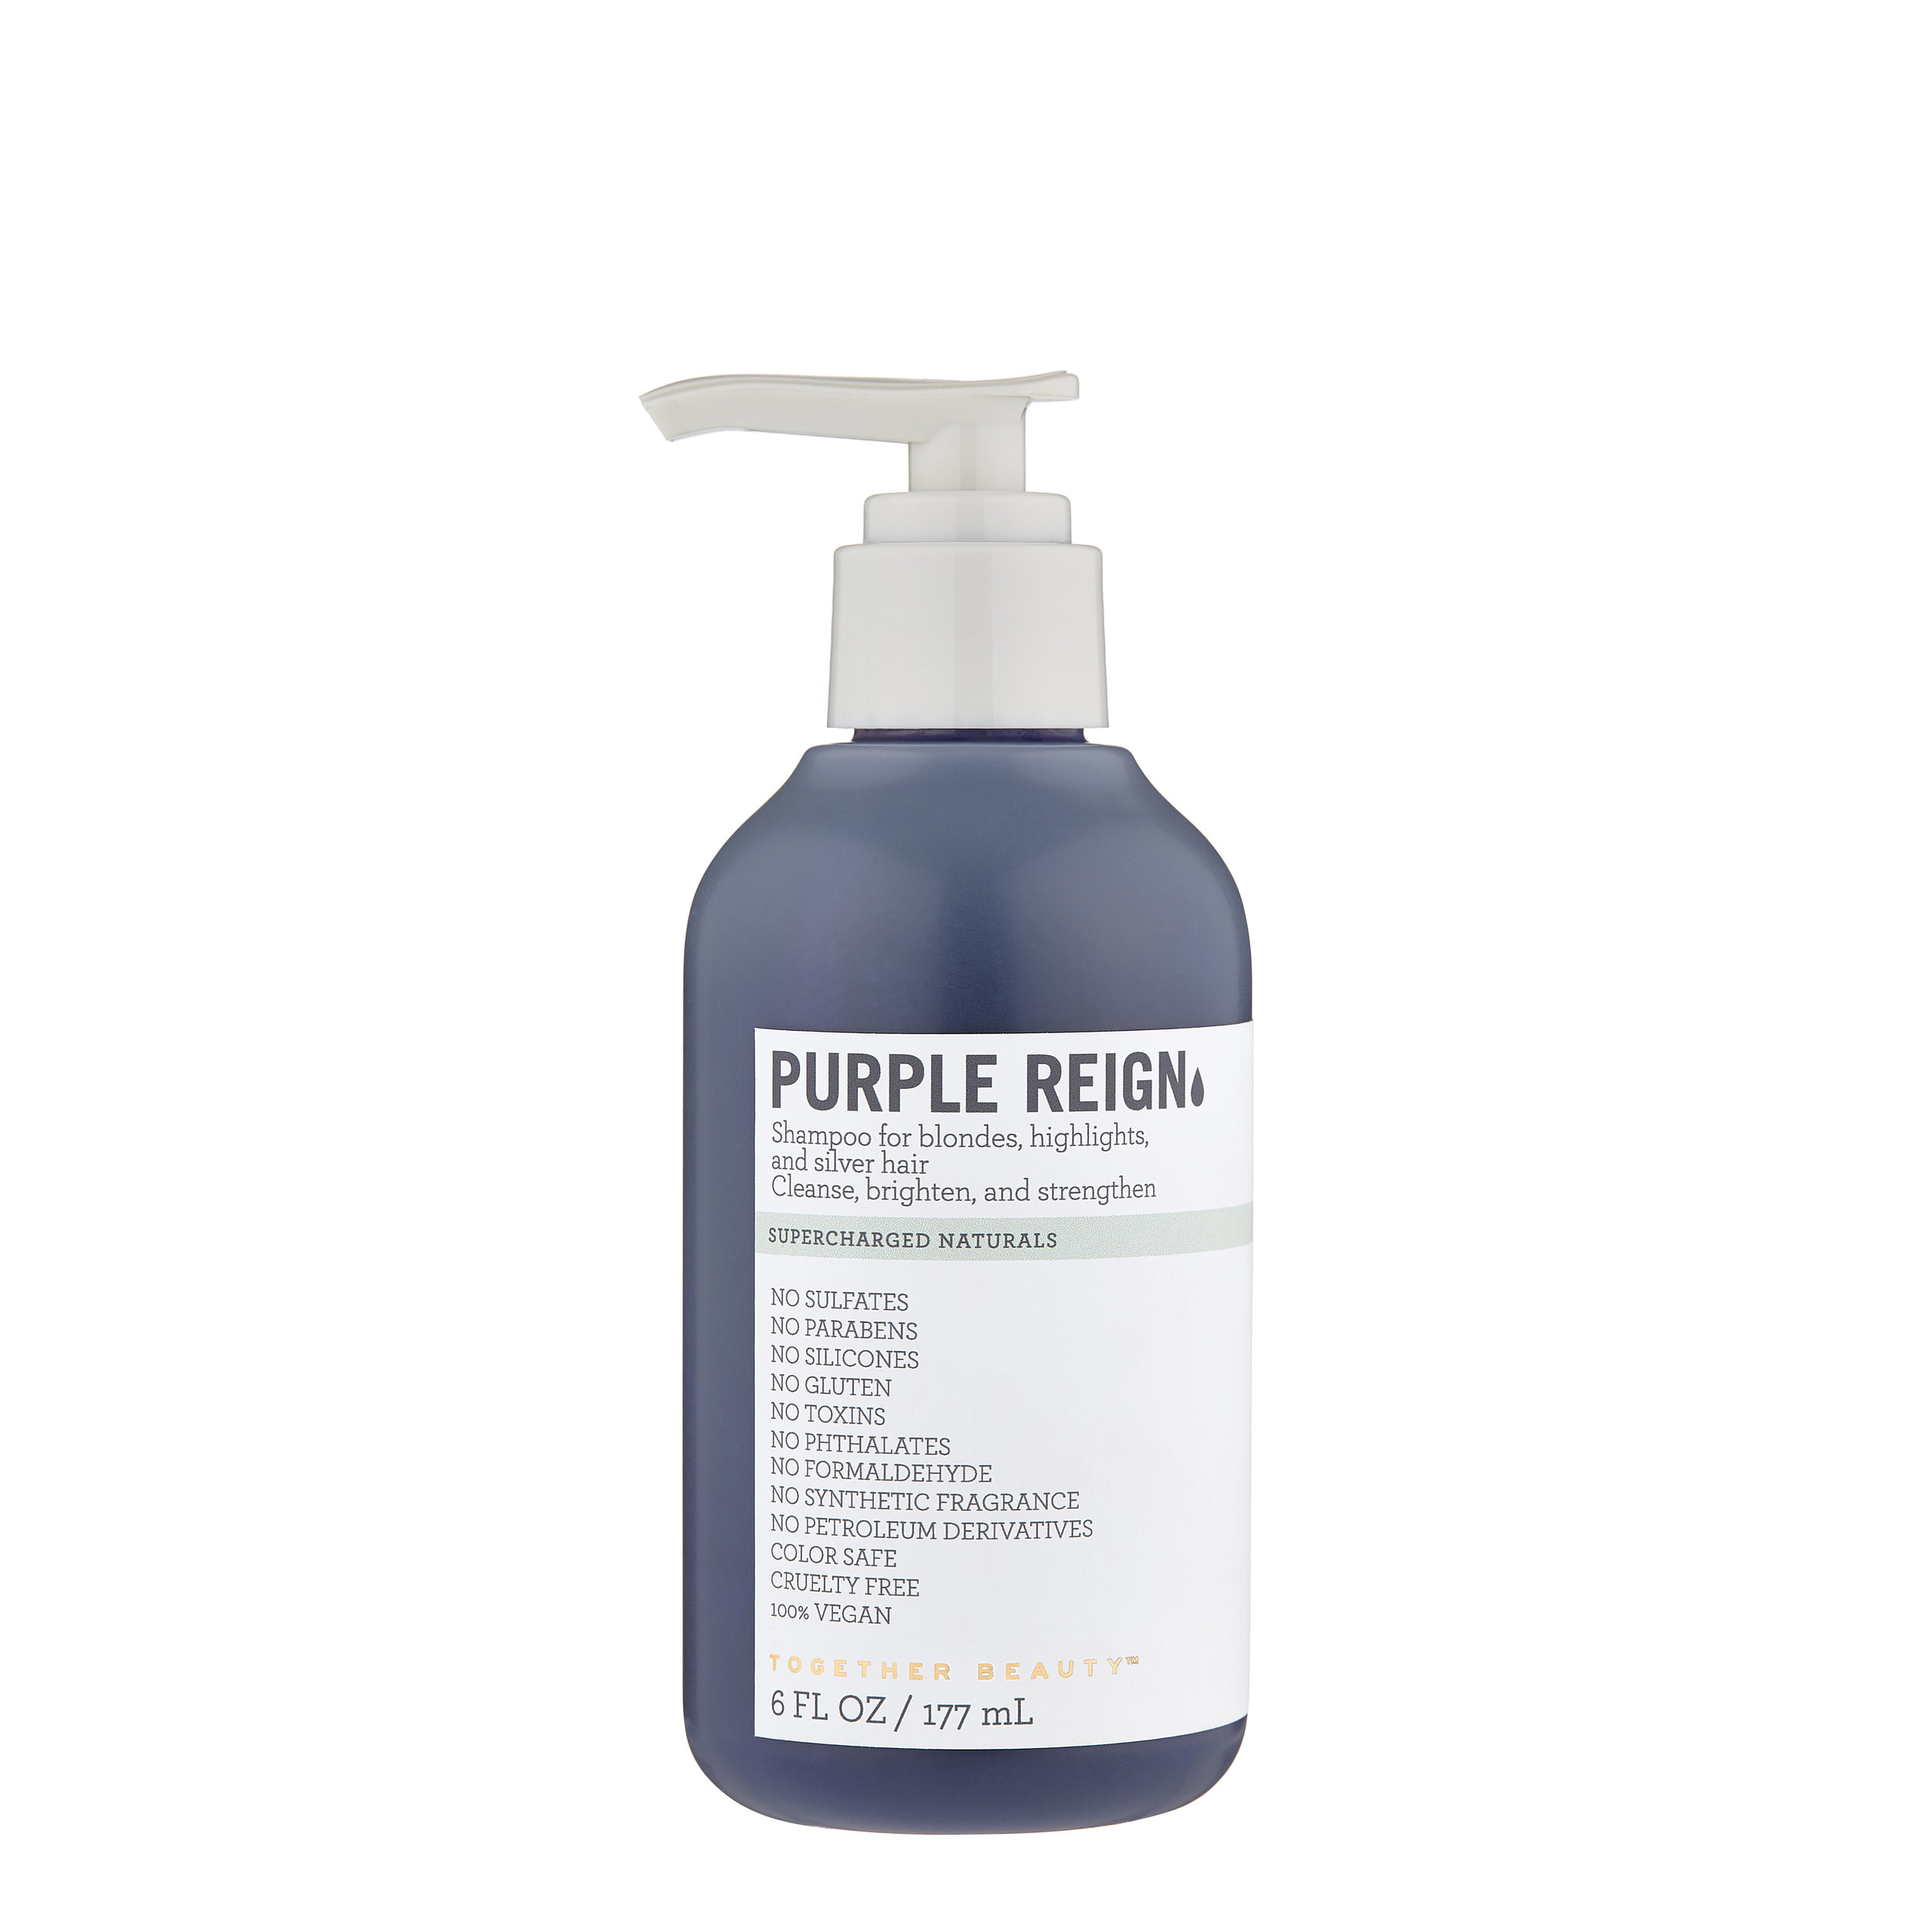 PURPLE REIGN - Shampoo for blondes, highlights, and silver hairCleanse, brighten, and strengthen